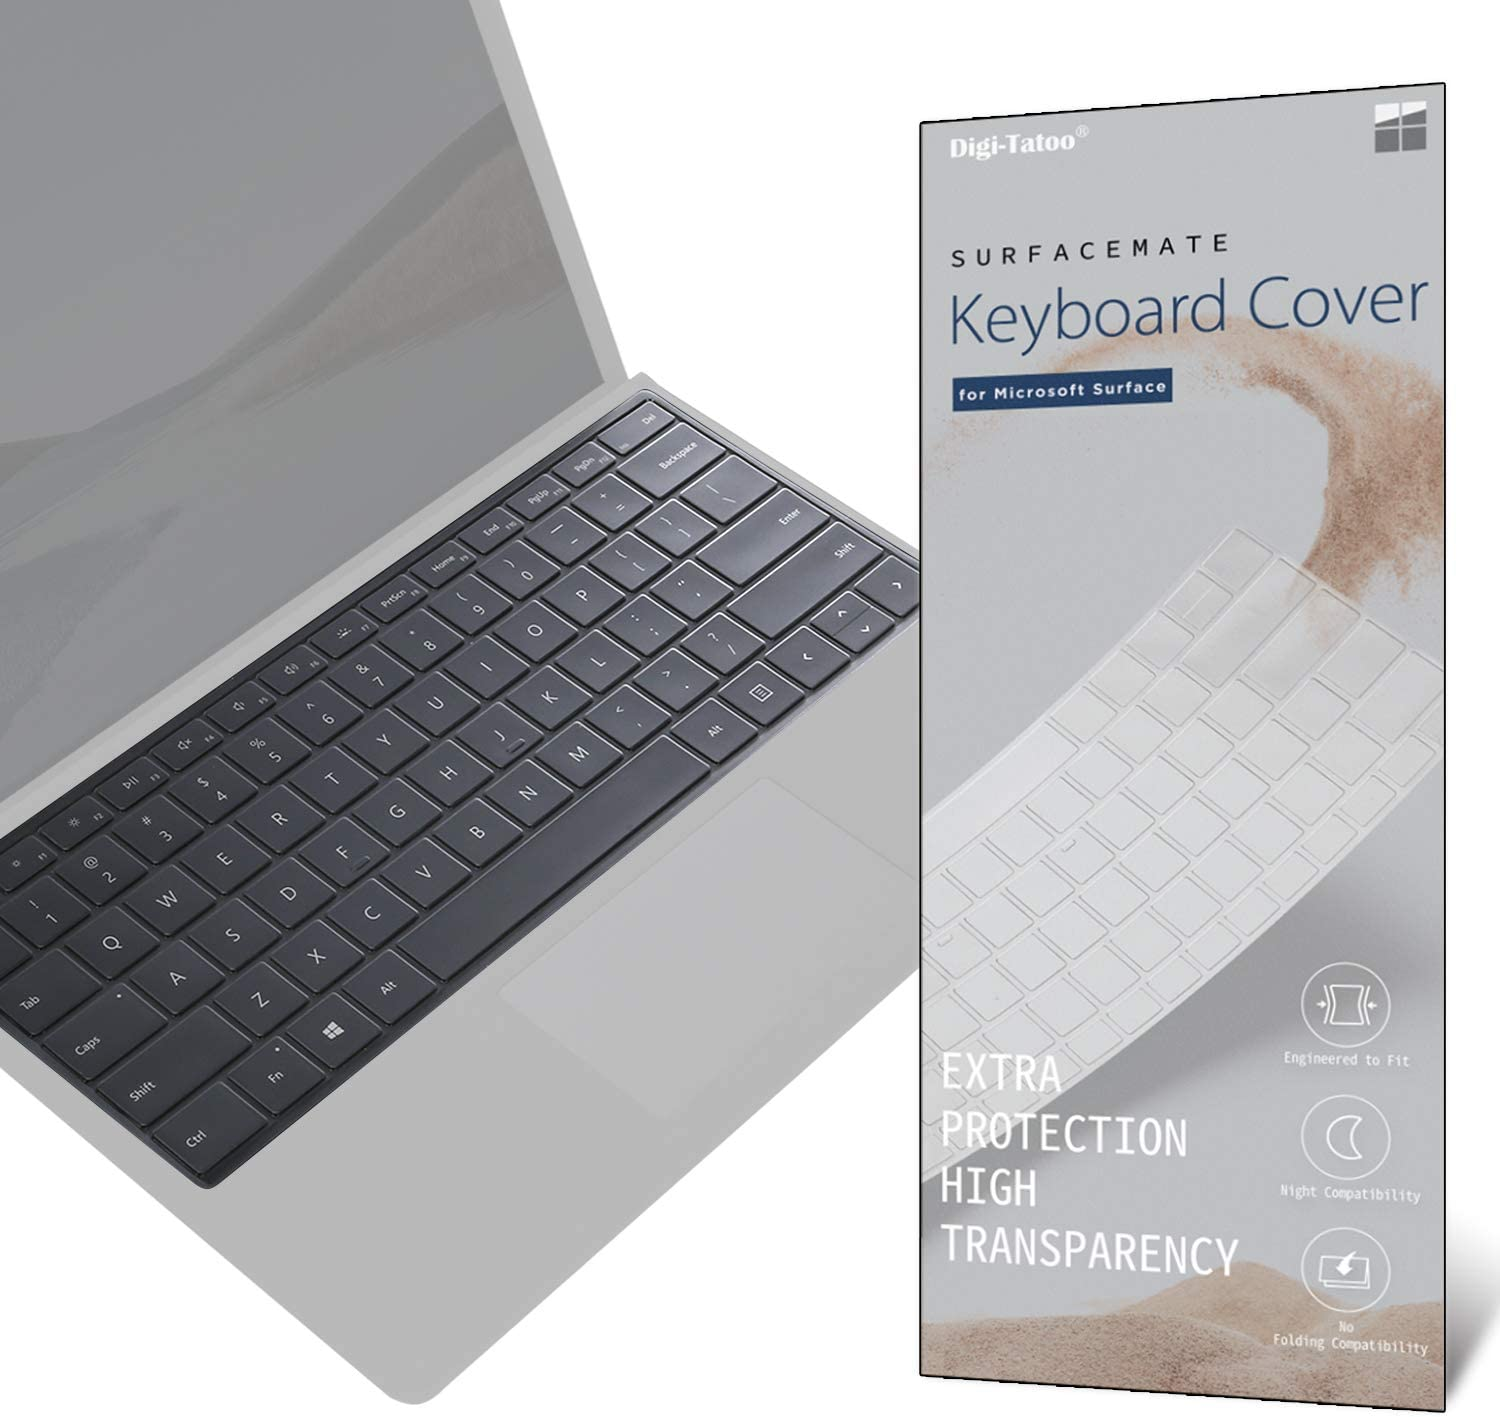 Digi-Tatoo SurfaceMate Keyboard Cover Protector Skin for Microsoft Surface Pro X/Pro 7/ Pro 6/ Pro 5/ Pro 4, Premium Ultra Thin 0.18mm, High Transparency, US Keyboard Layout